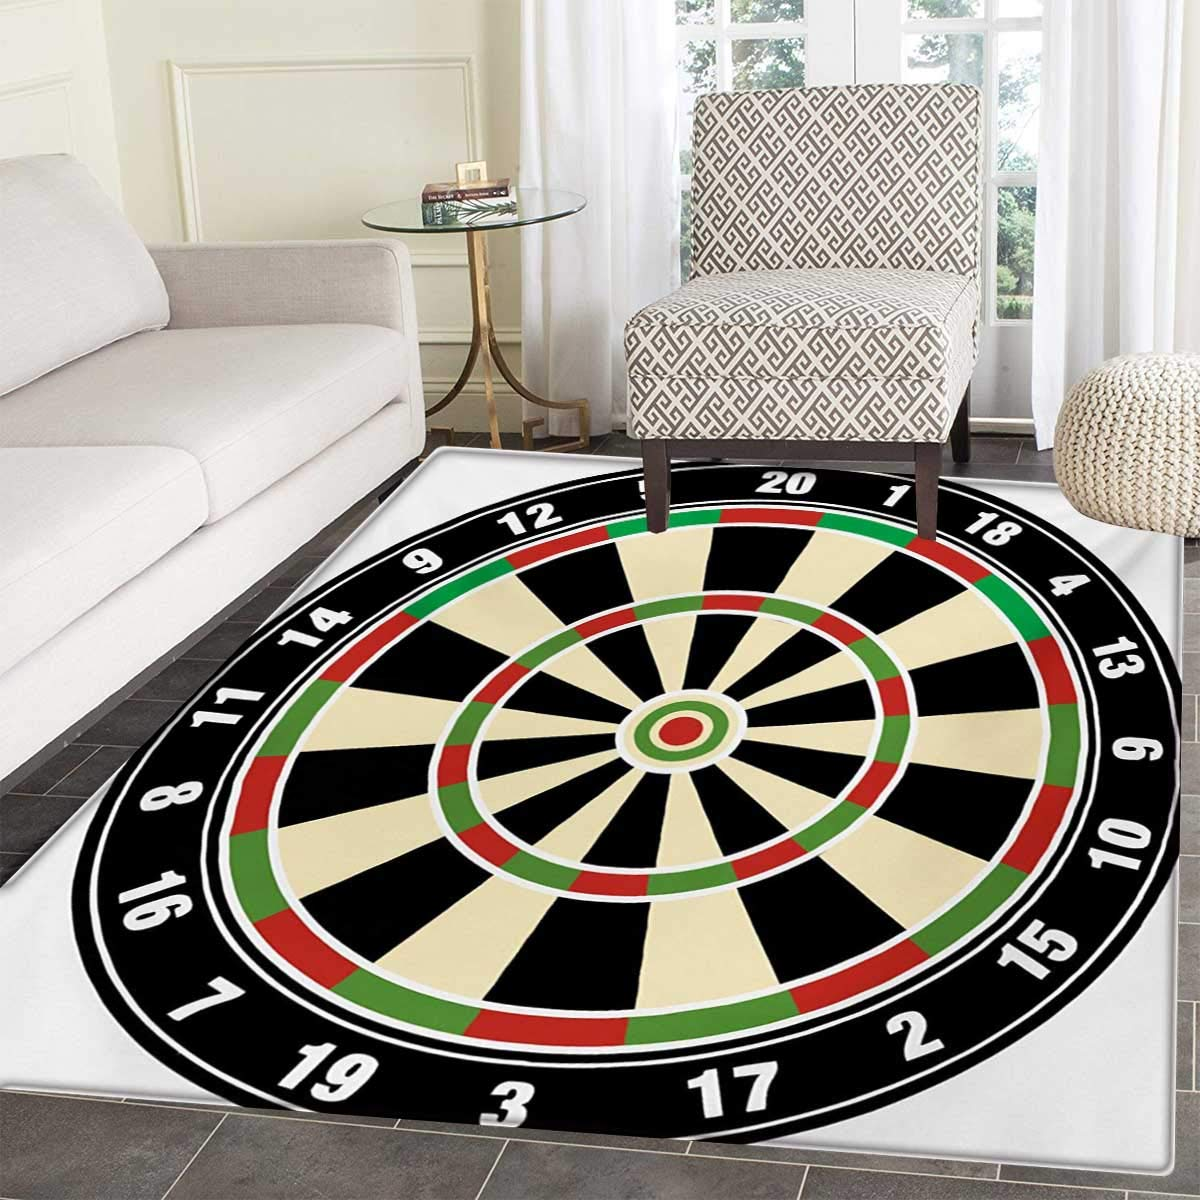 "Sports Door Mats Inside Dart Board Numbers Sports Accuracy Precision Target Leisure Time Graphic Bath Mat tub Bathroom Mat 30""x40"" Vermilion Green Black"